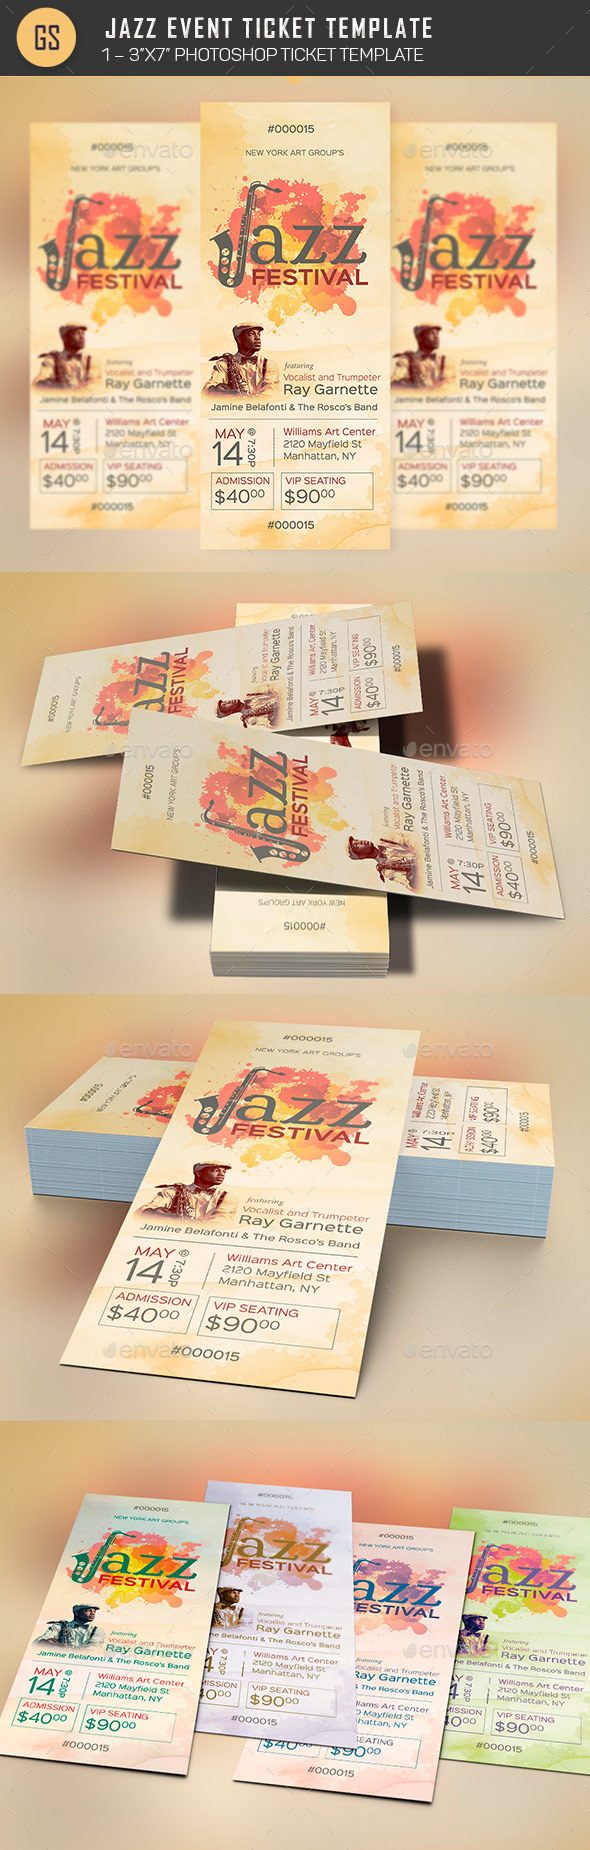 Jazz Event Ticket Template by Godserv2 | GraphicRiver